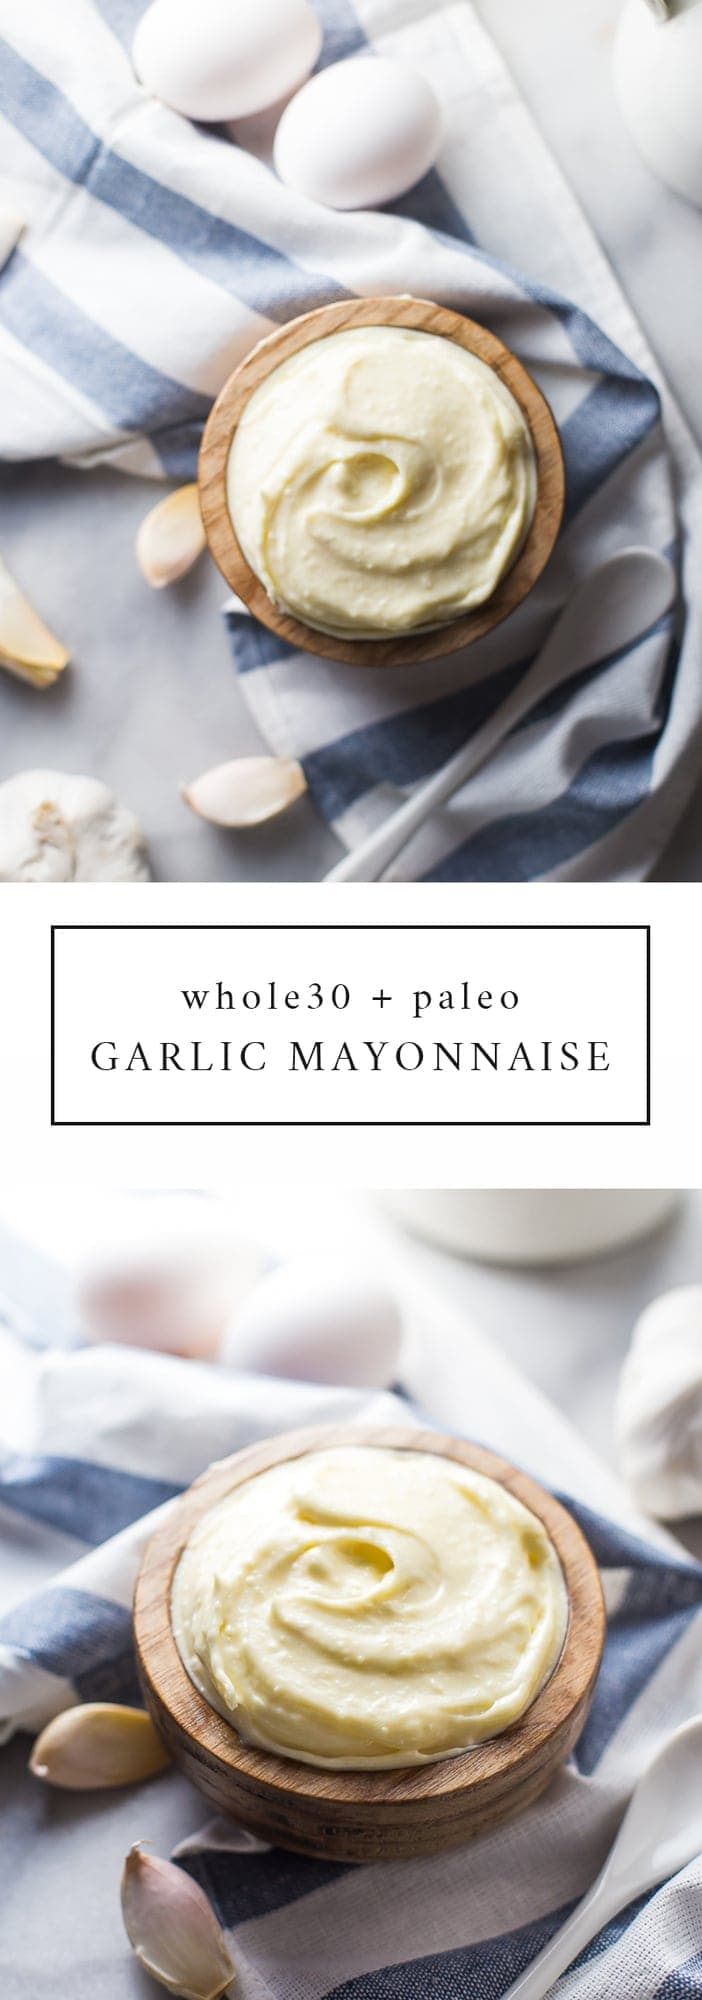 Whole30 garlic mayonnaise : this paleo garlic mayo is amazing! You need a jar in your fridge at all times during a Whole30, I promise.